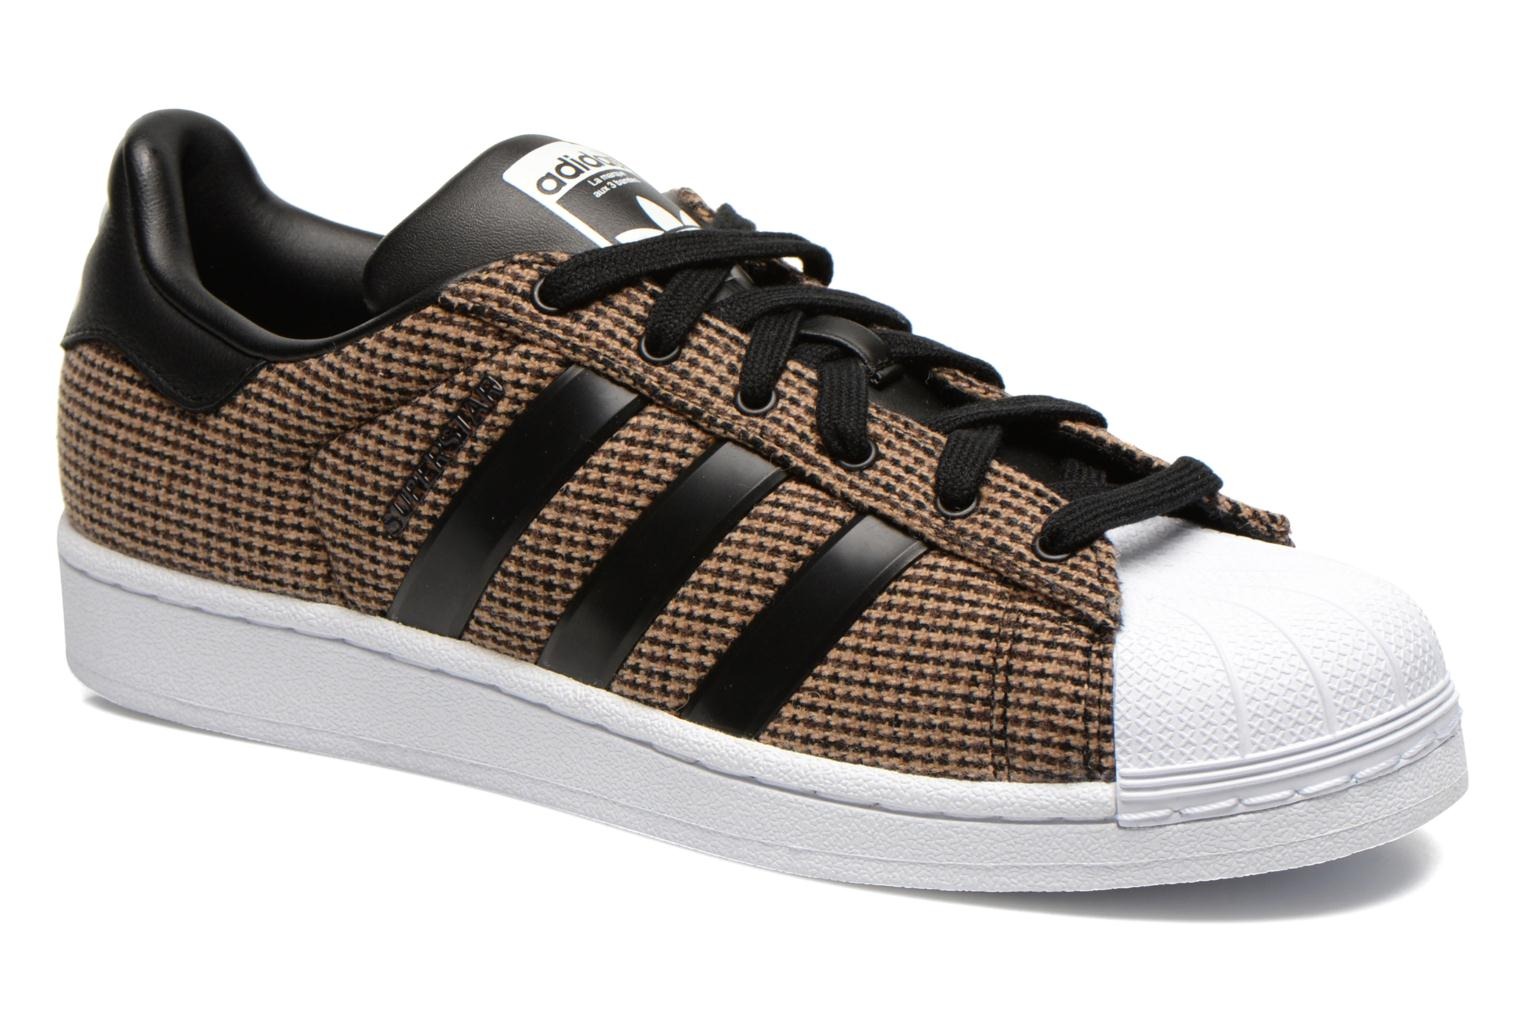 adidas superstar marron. sarenza superstar homme